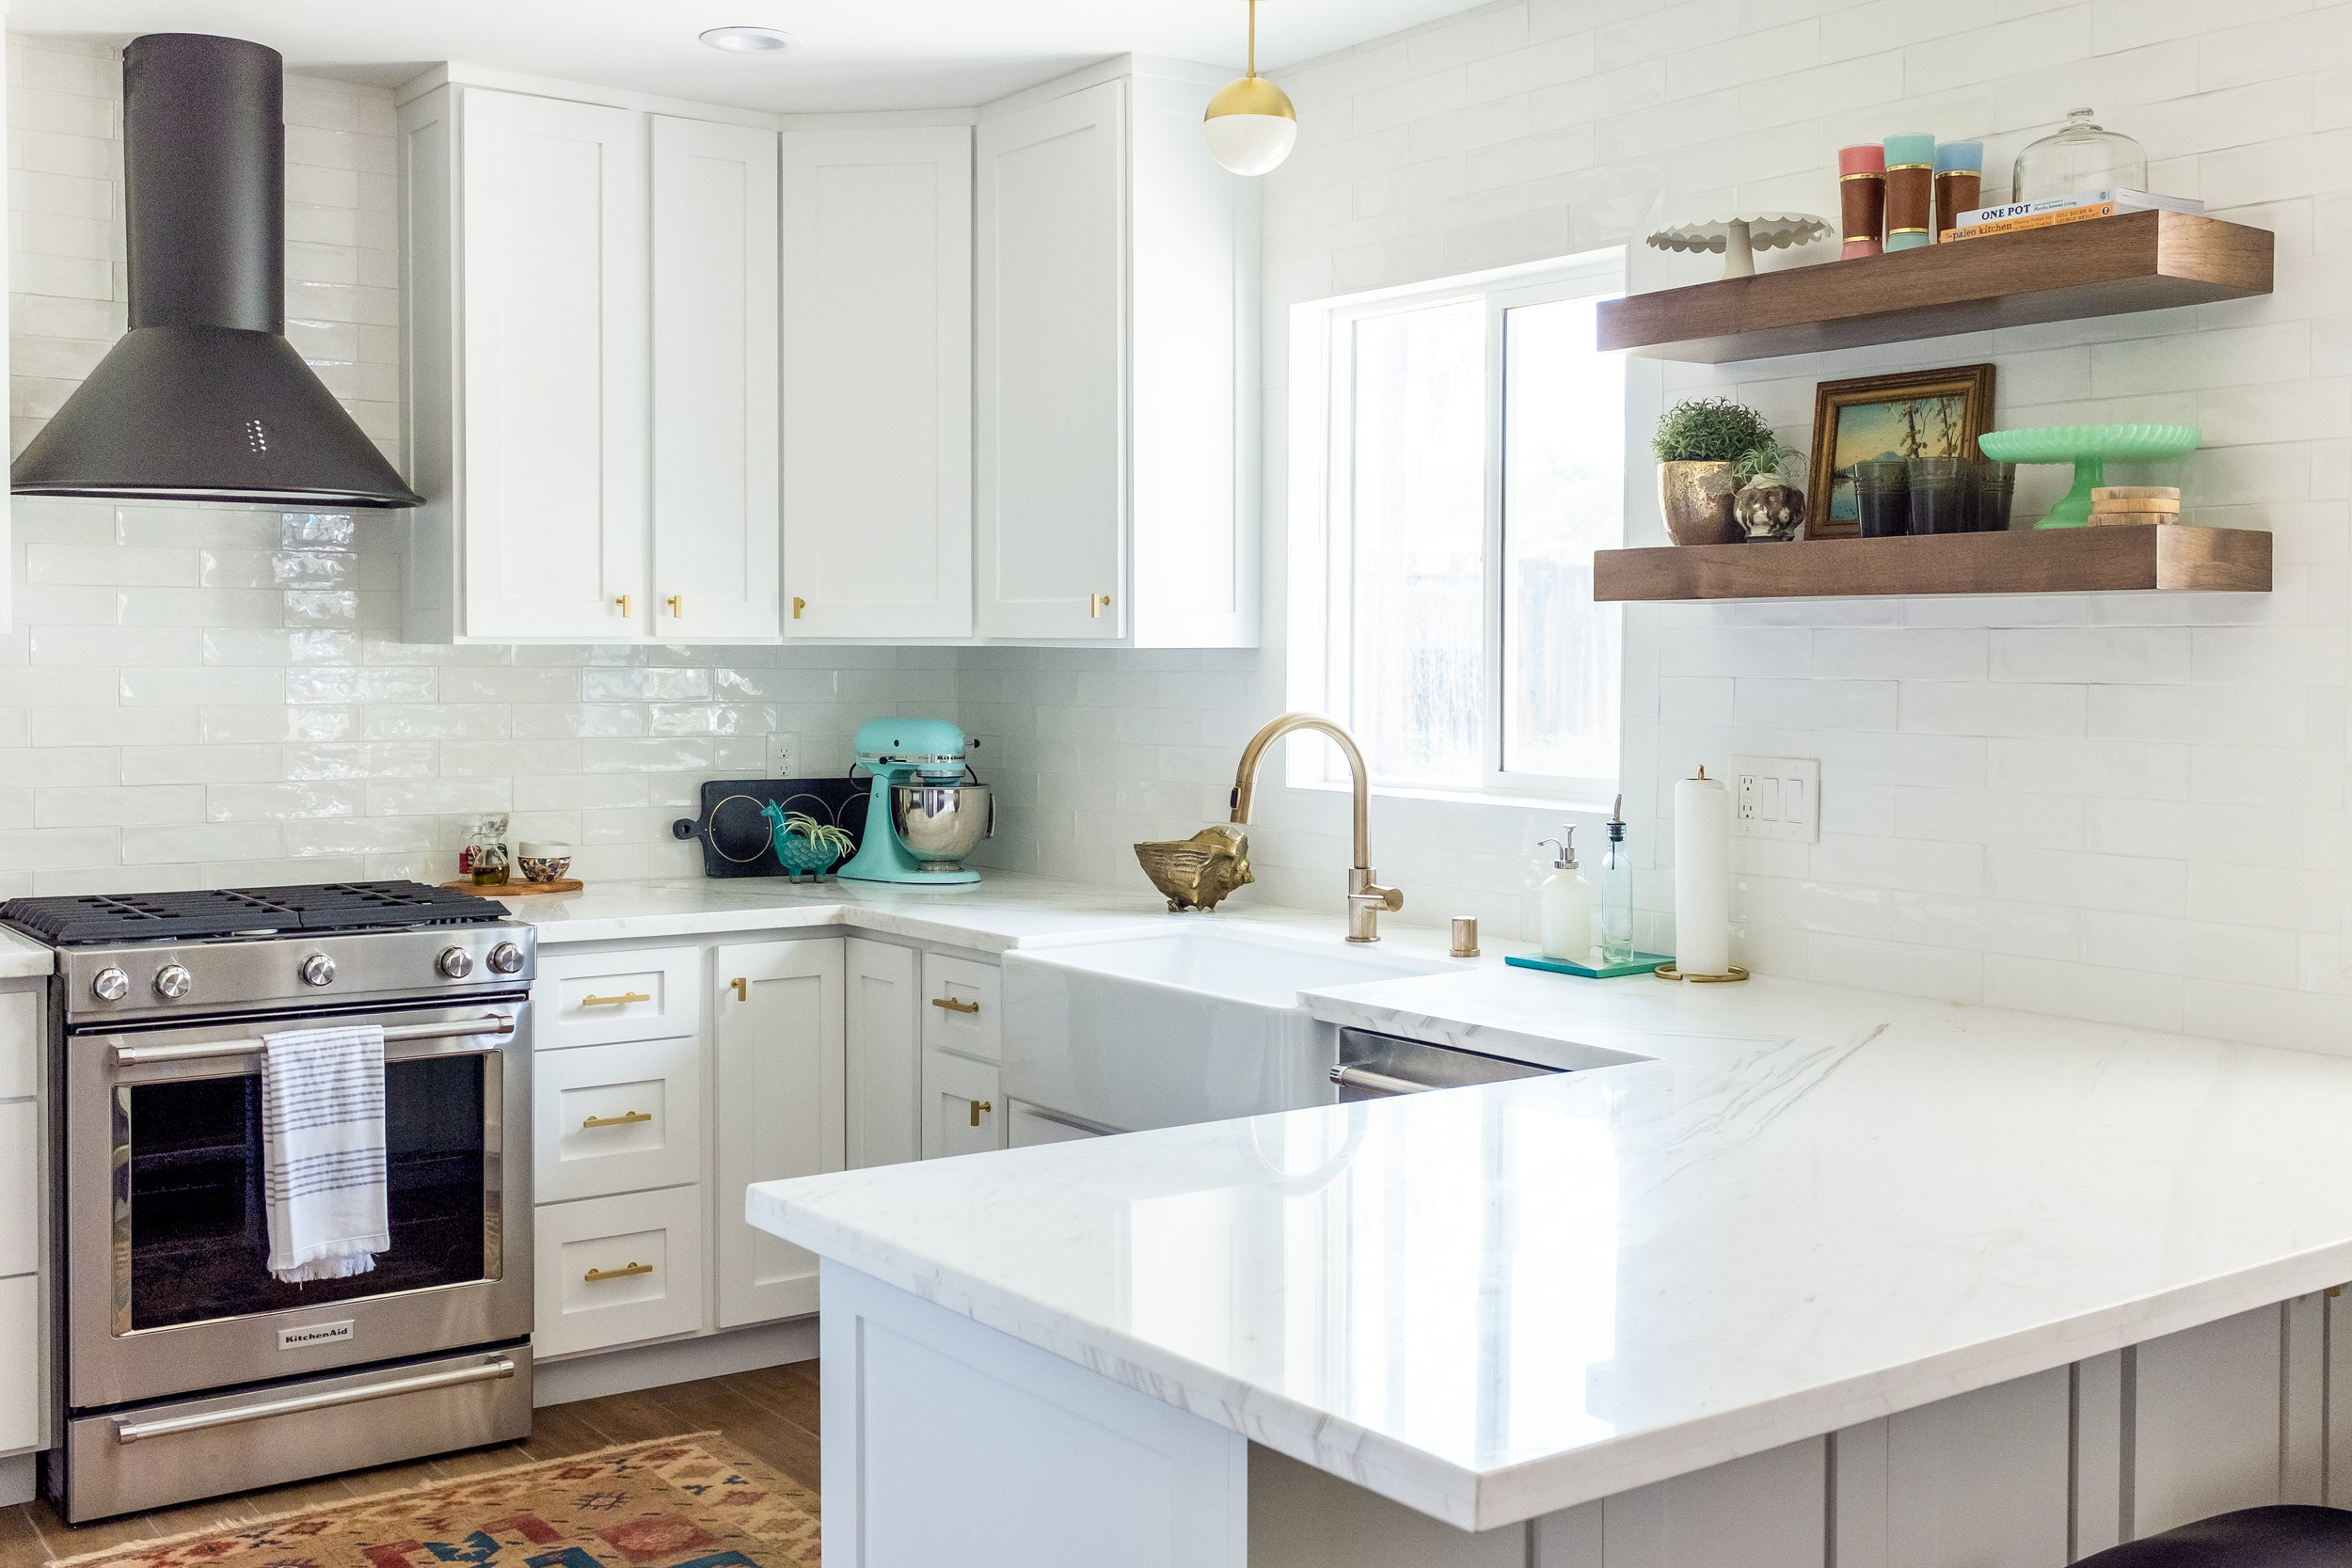 Retro White Shaker Kitchen with Black and Stainless Appliances, floating shelves, mid century modern lighting and long subway tile backsplash